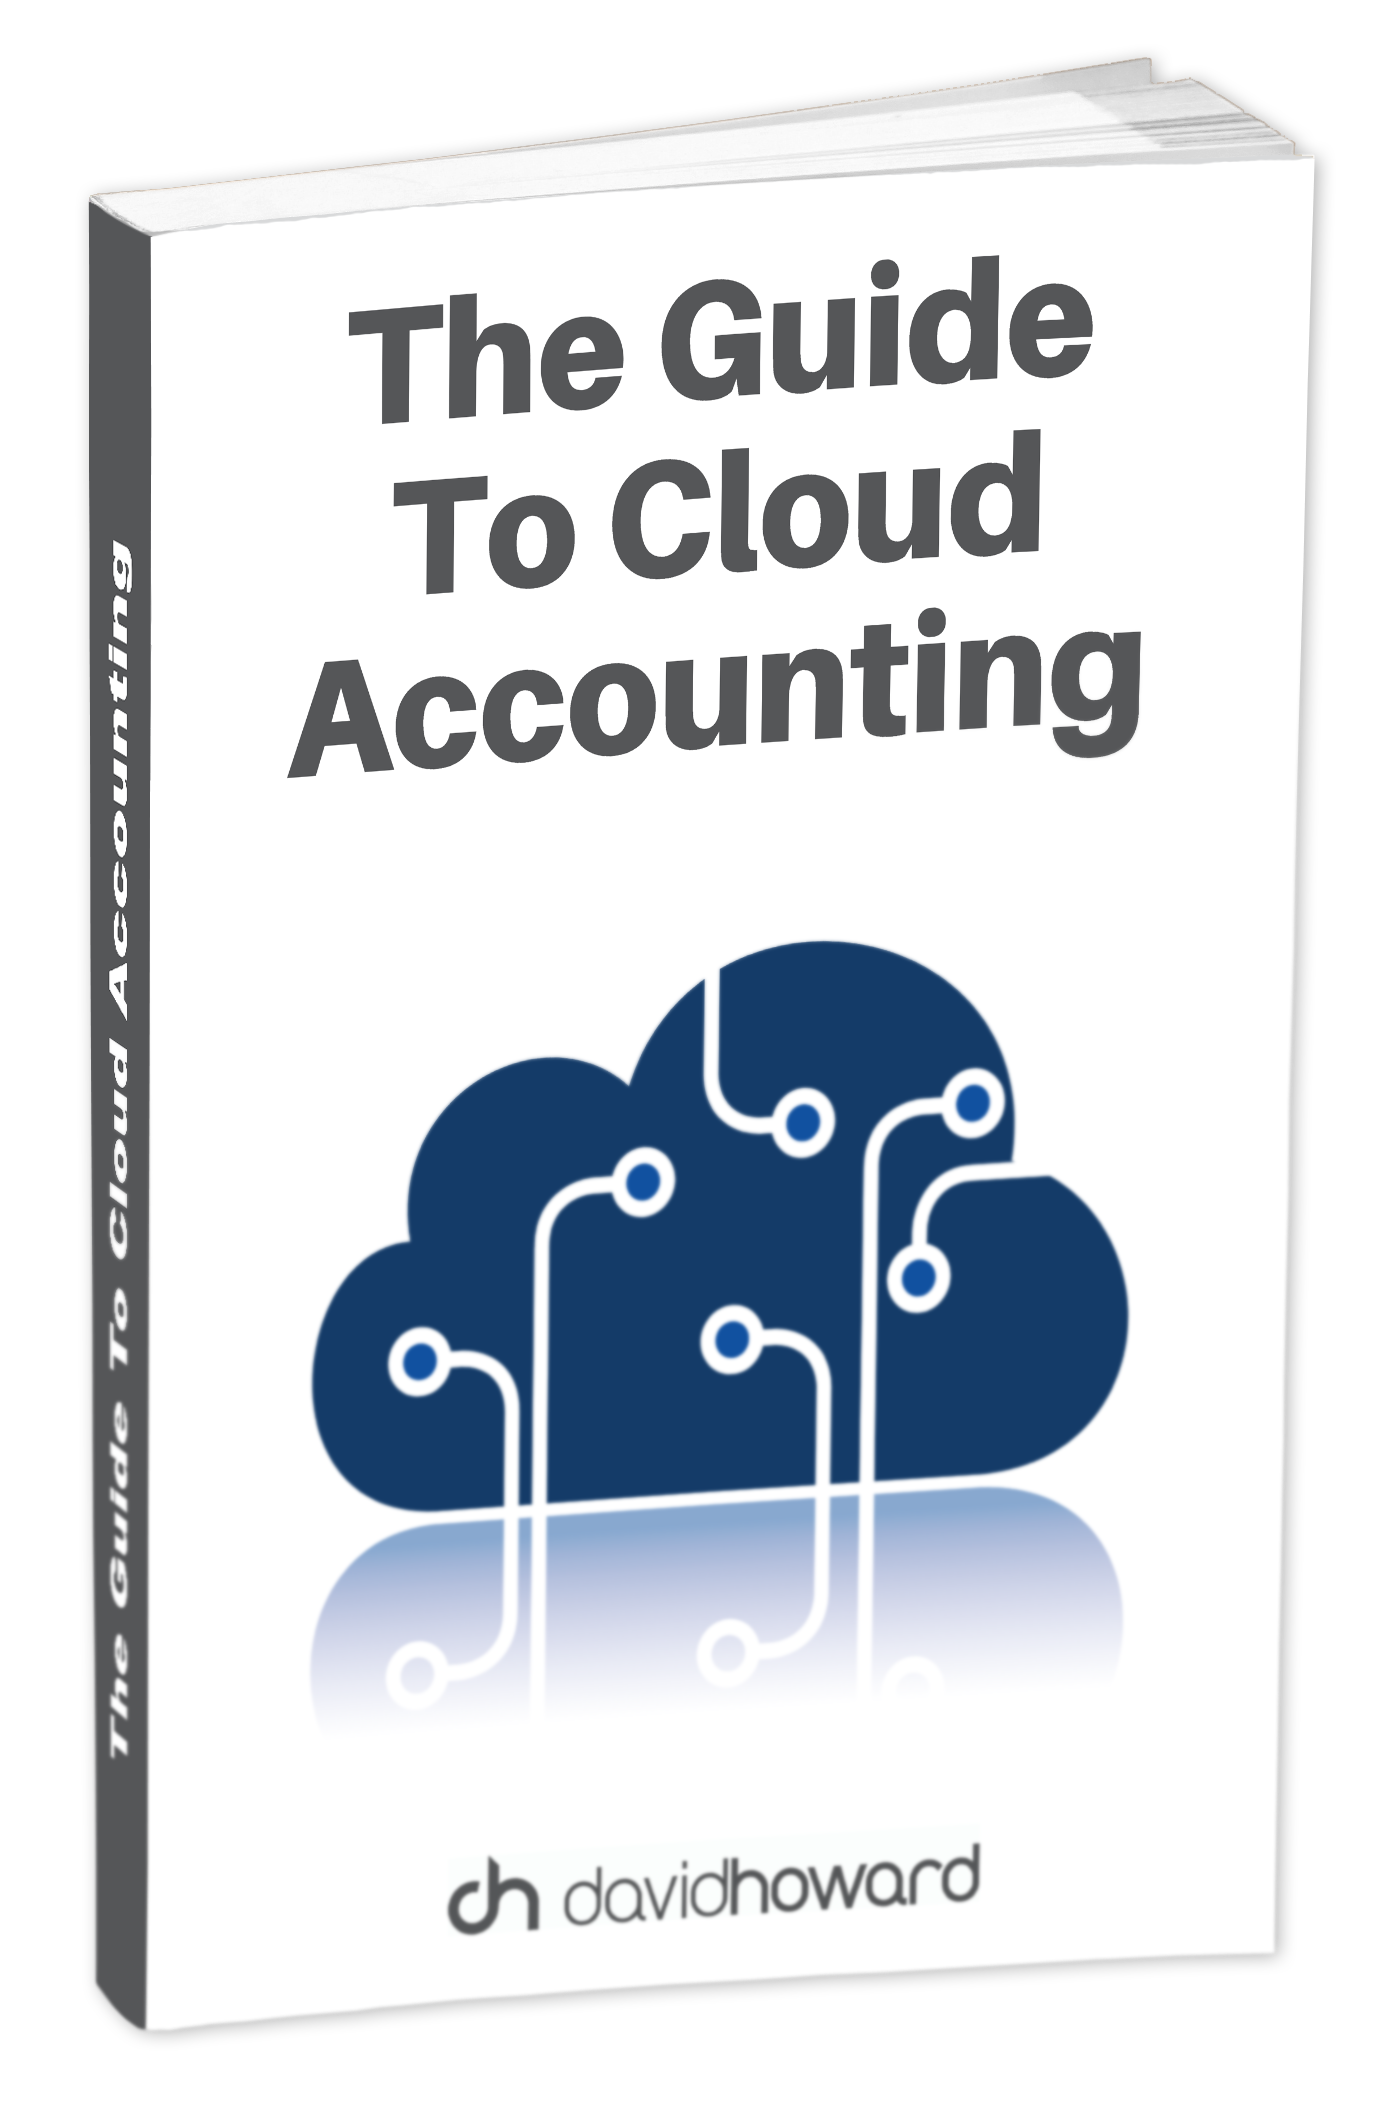 Ebook Cover_ Cloud Accounting_ With drop shadow